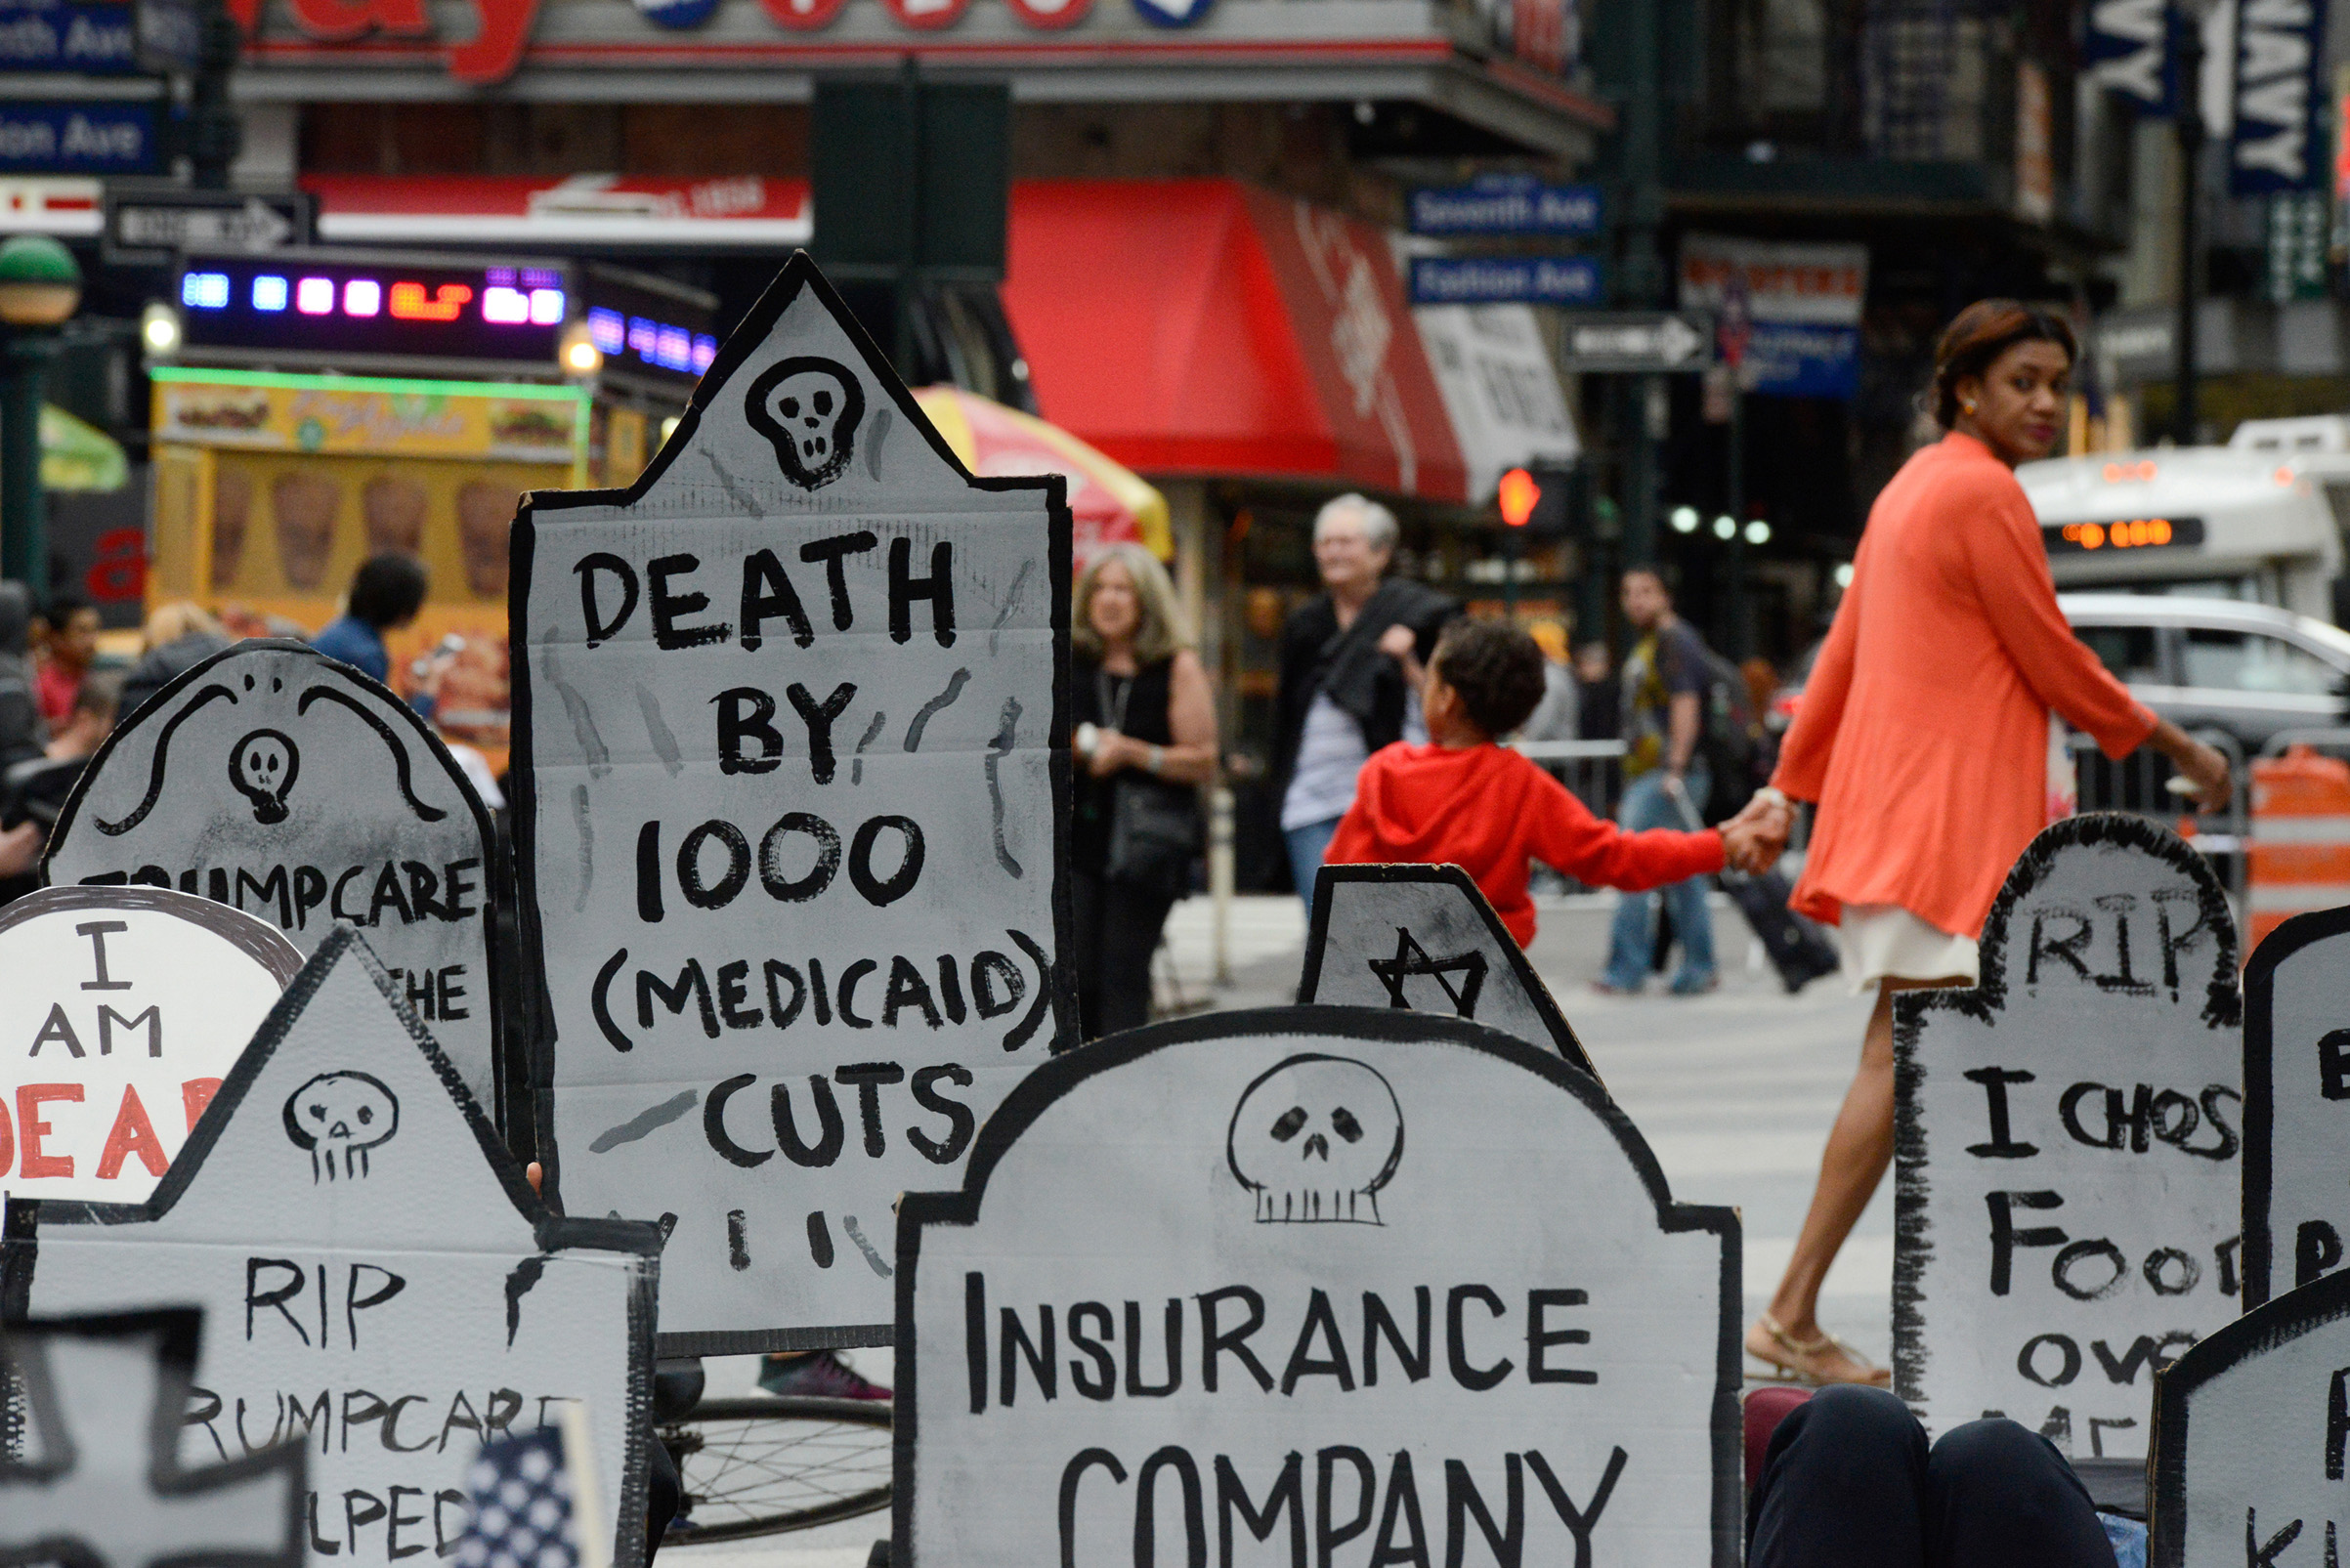 A protest of the Republican health care effort on June 4 in New York City.